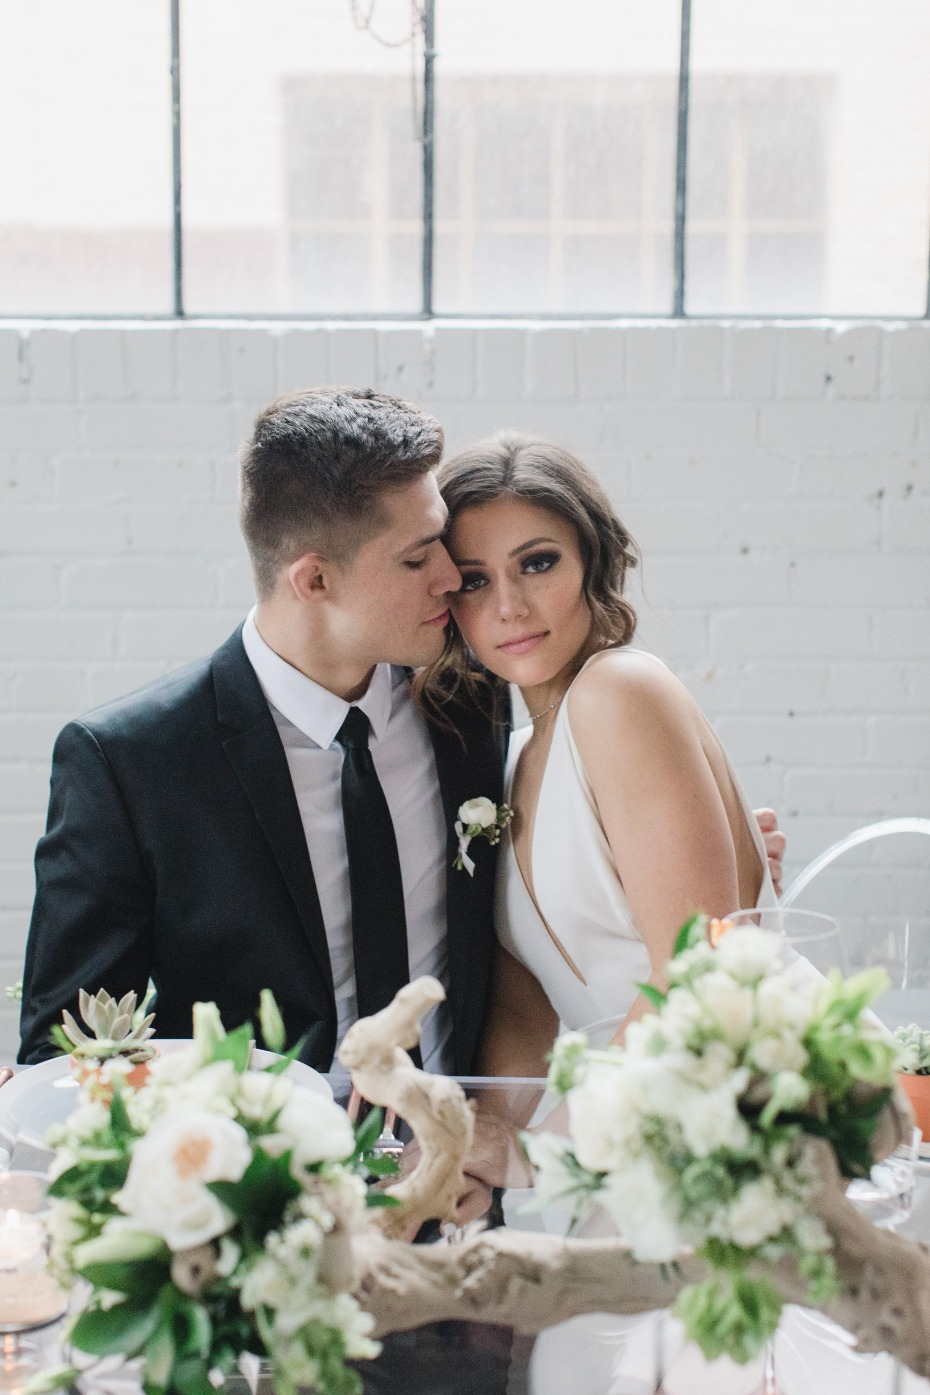 Gorgeous couple and a mod wedding